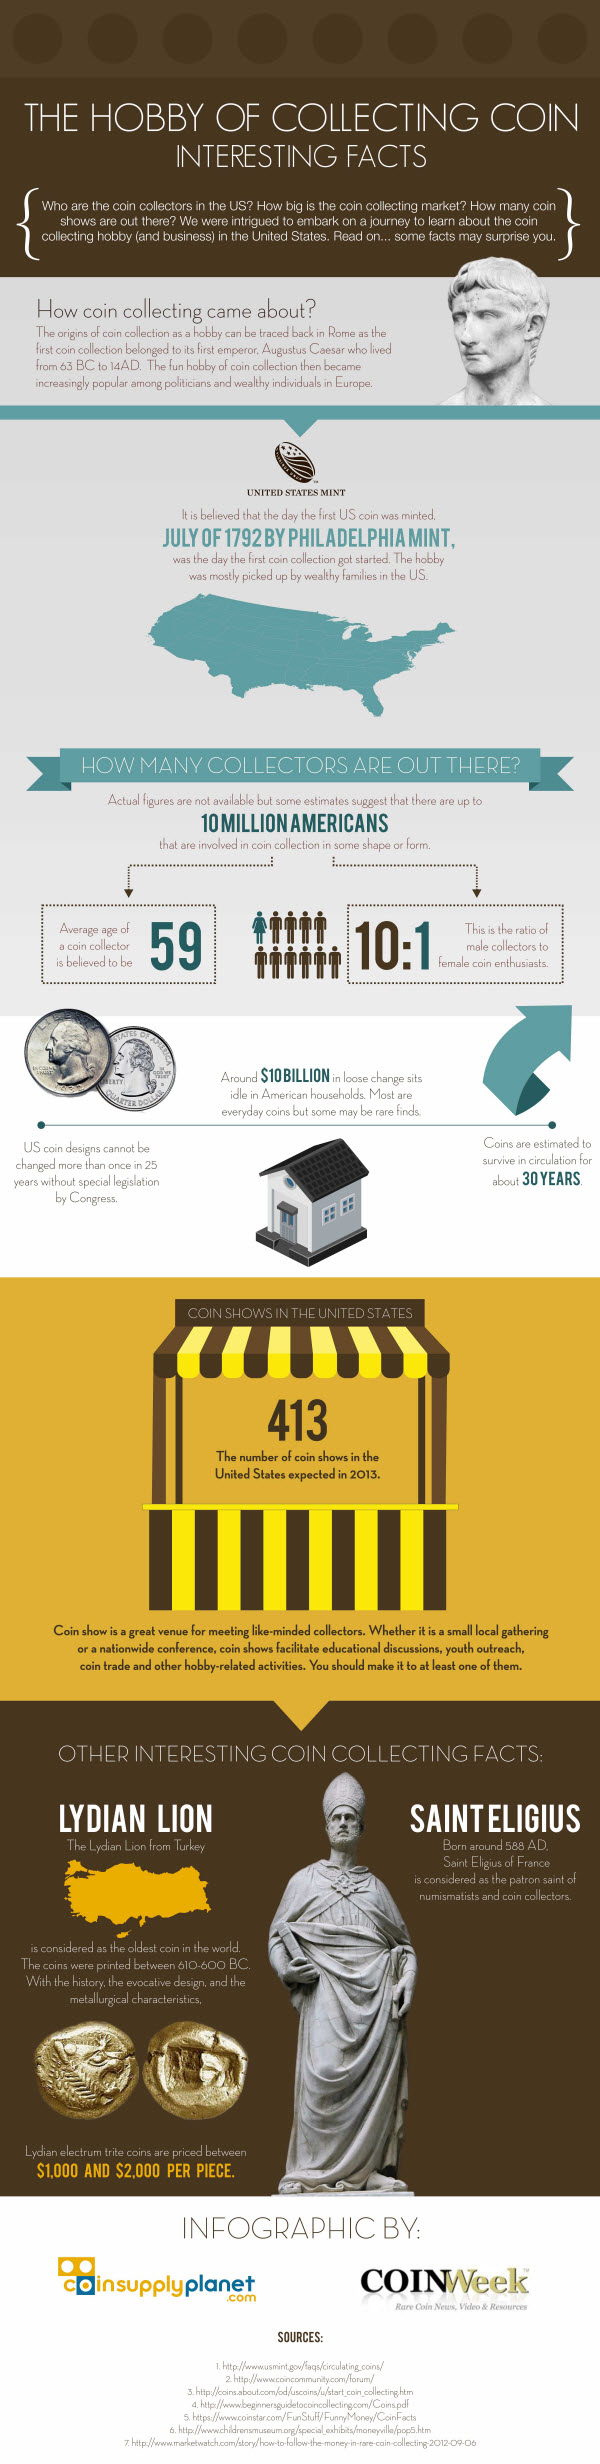 The Hobby of Collecting Coins Infographic